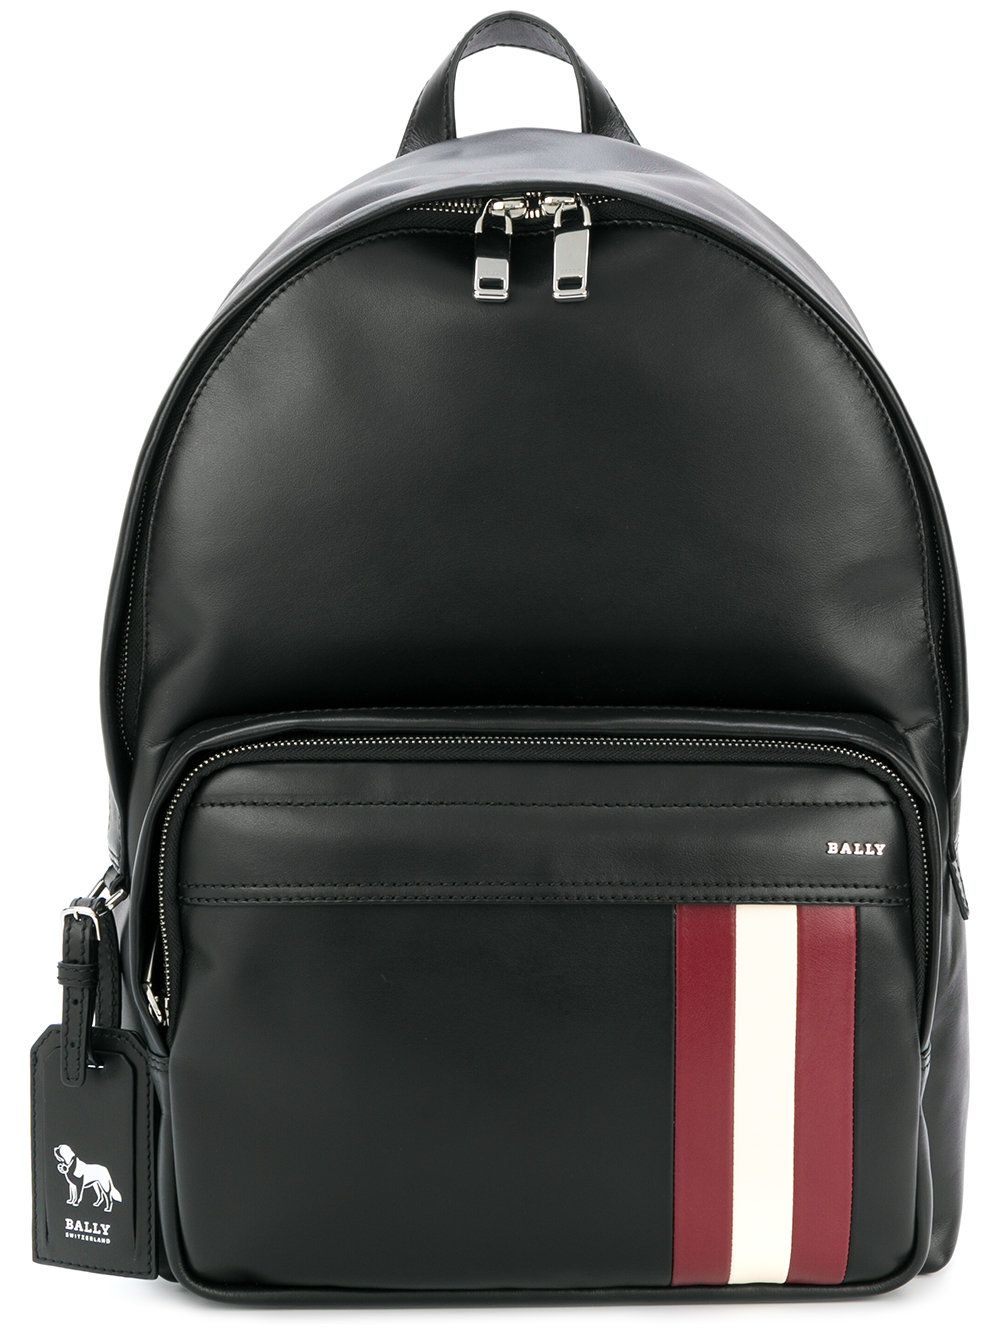 738f19b006 BALLY .  bally  bags  backpacks